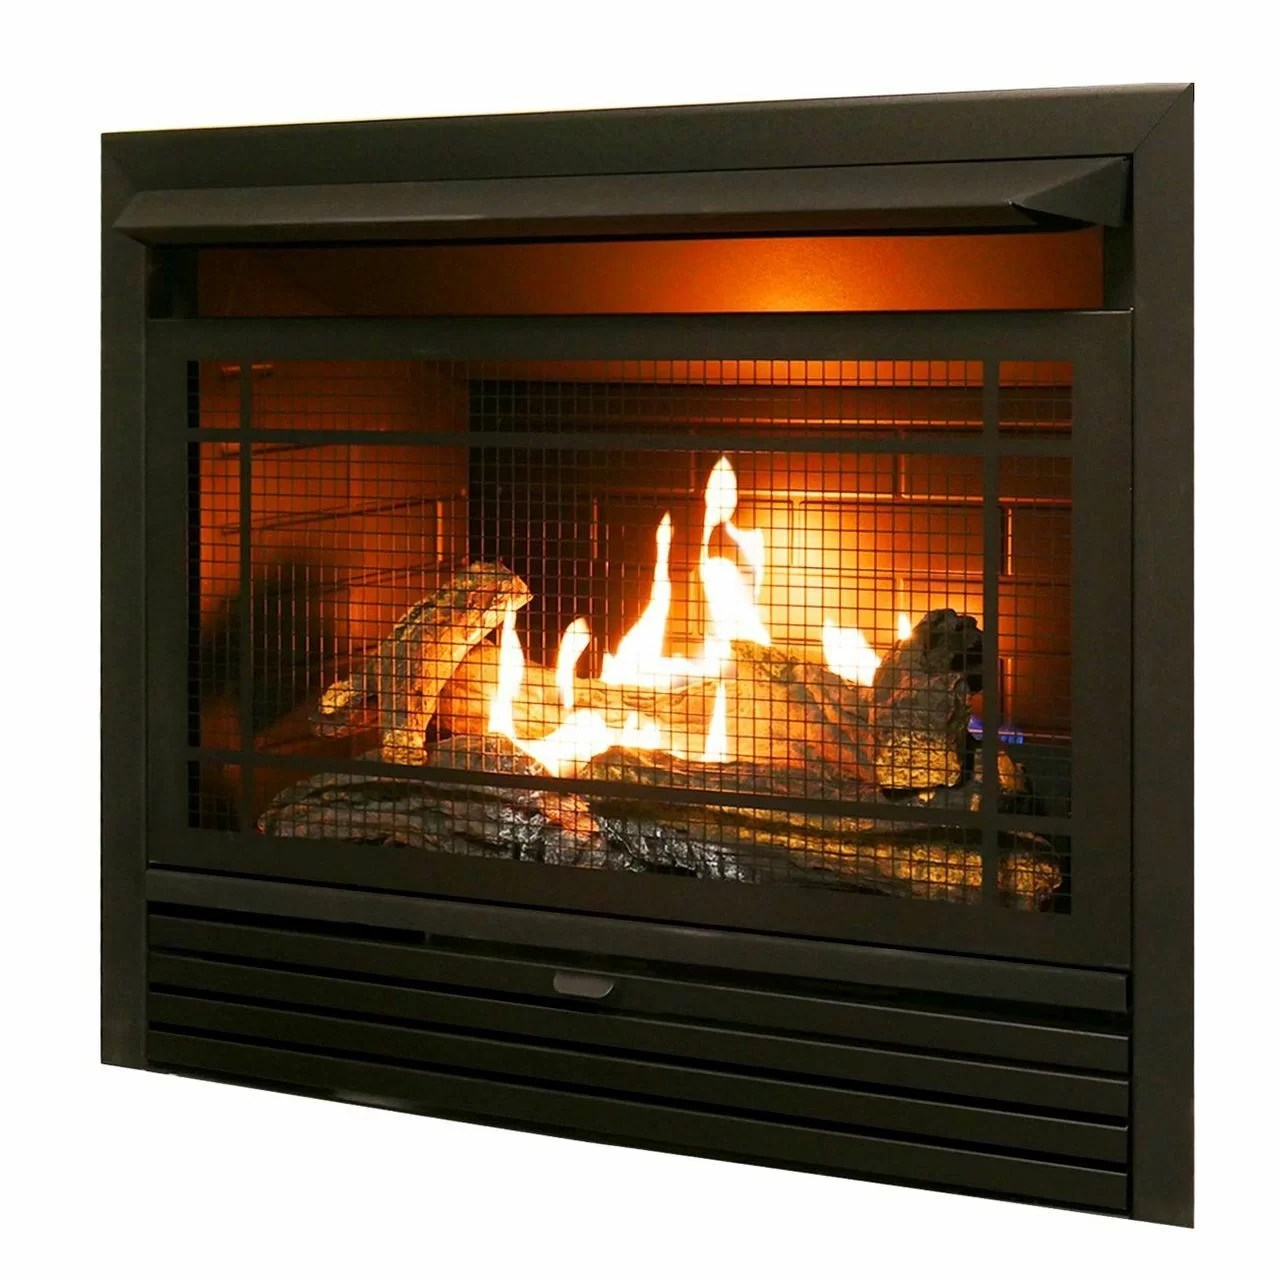 Propane Fireplace Inserts Hardwick Vent Free Recessed Natural Gas Propane Fireplace Insert